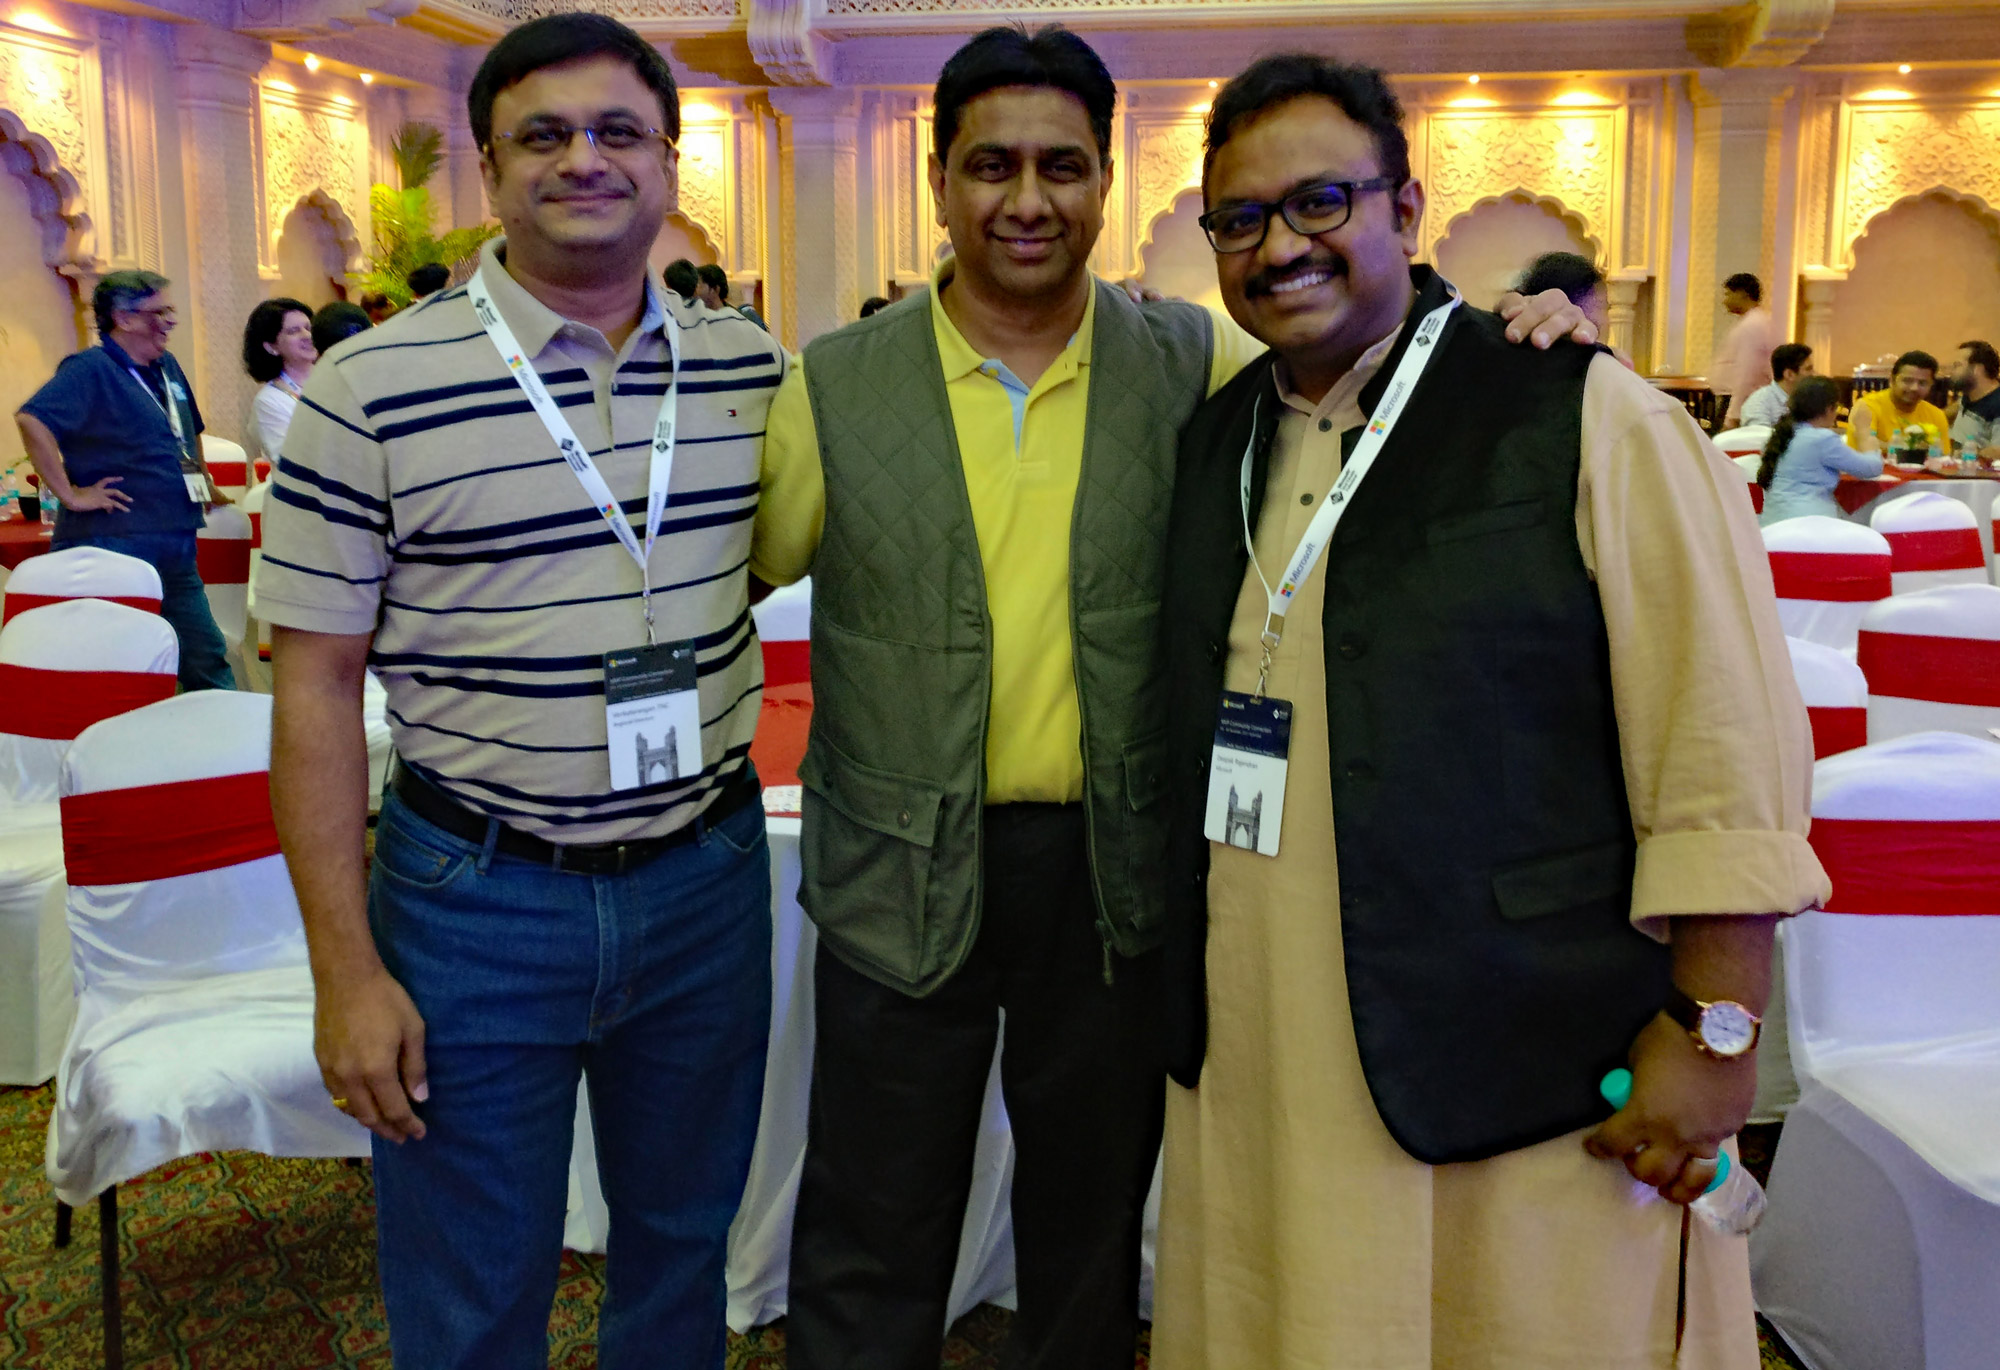 (From left) Venkatarangan, Praveen Srivatsa - RD from Bangalore, Deepak Rajendran - Community Program Manager, Microsoft India